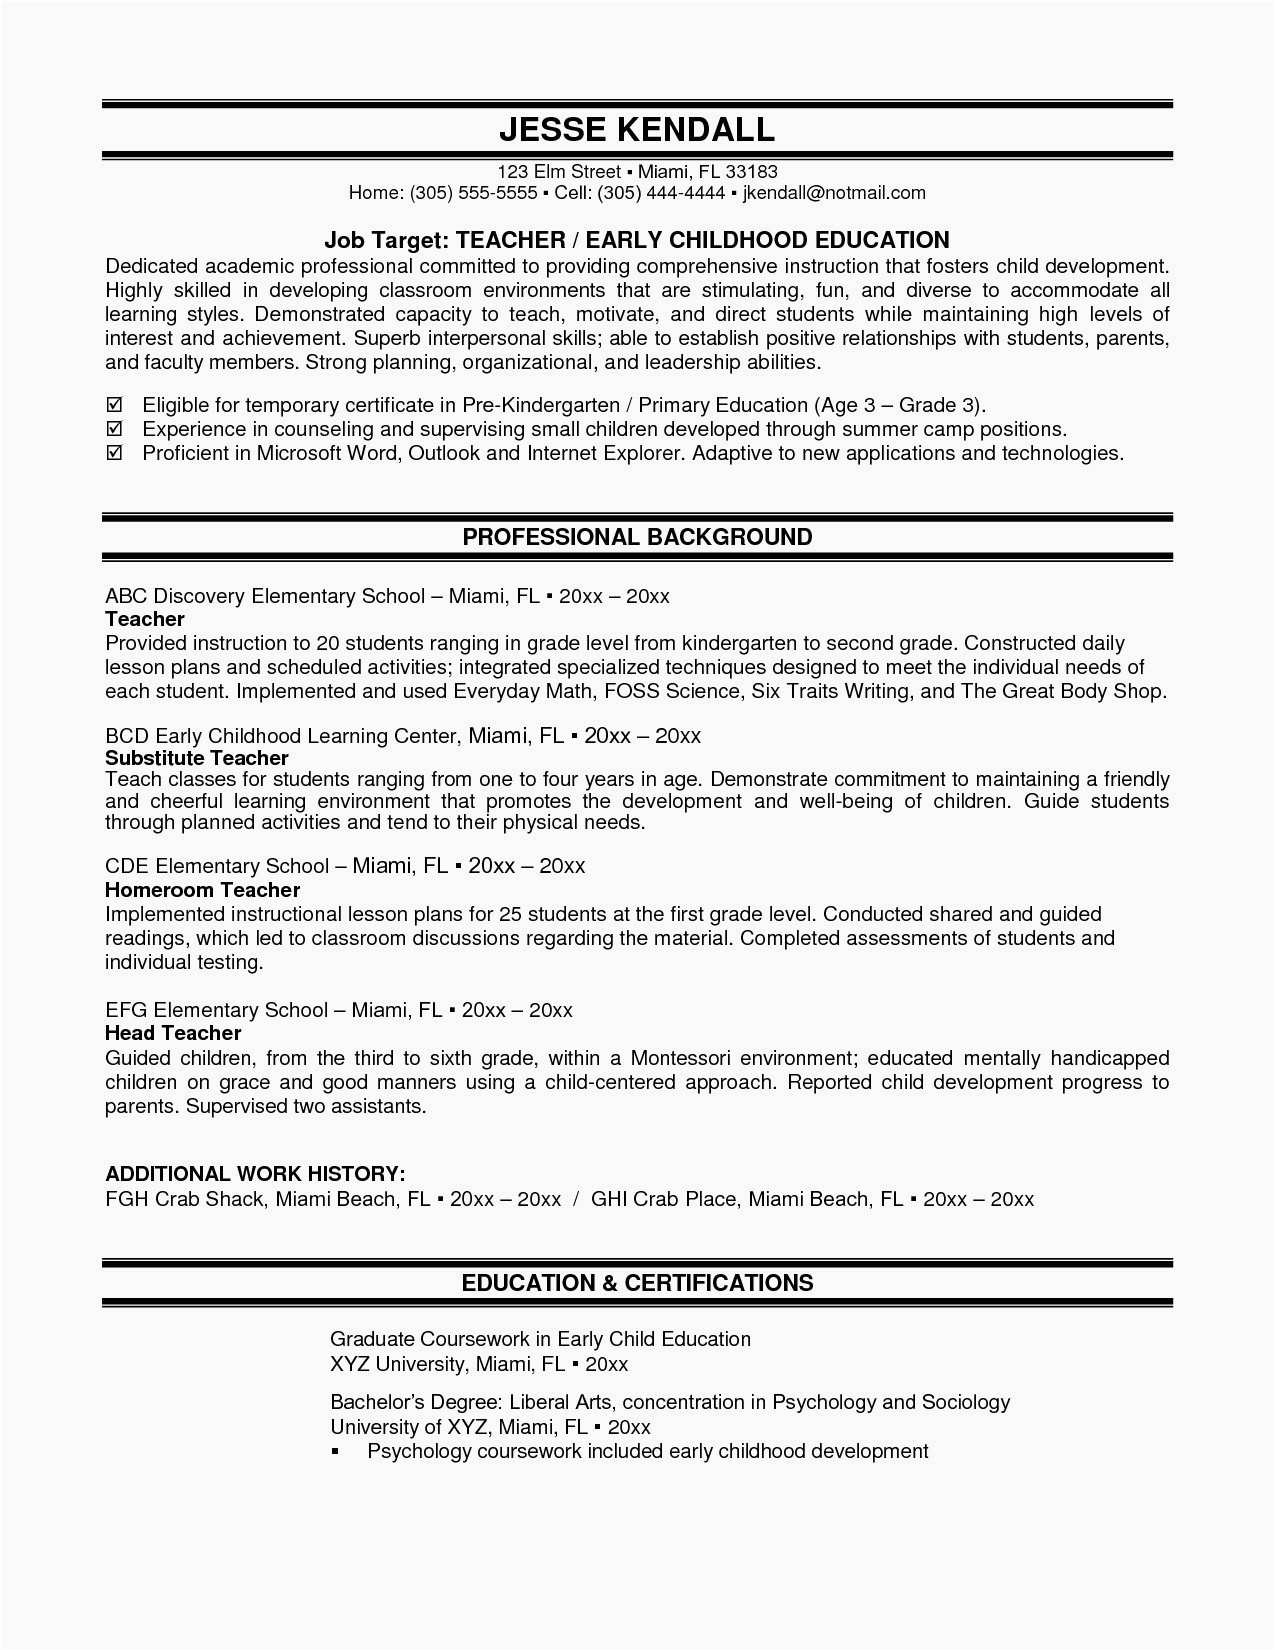 Resume Education Transfer Student - Words to Put A Resume Example New Best Elegant New Nurse Resume